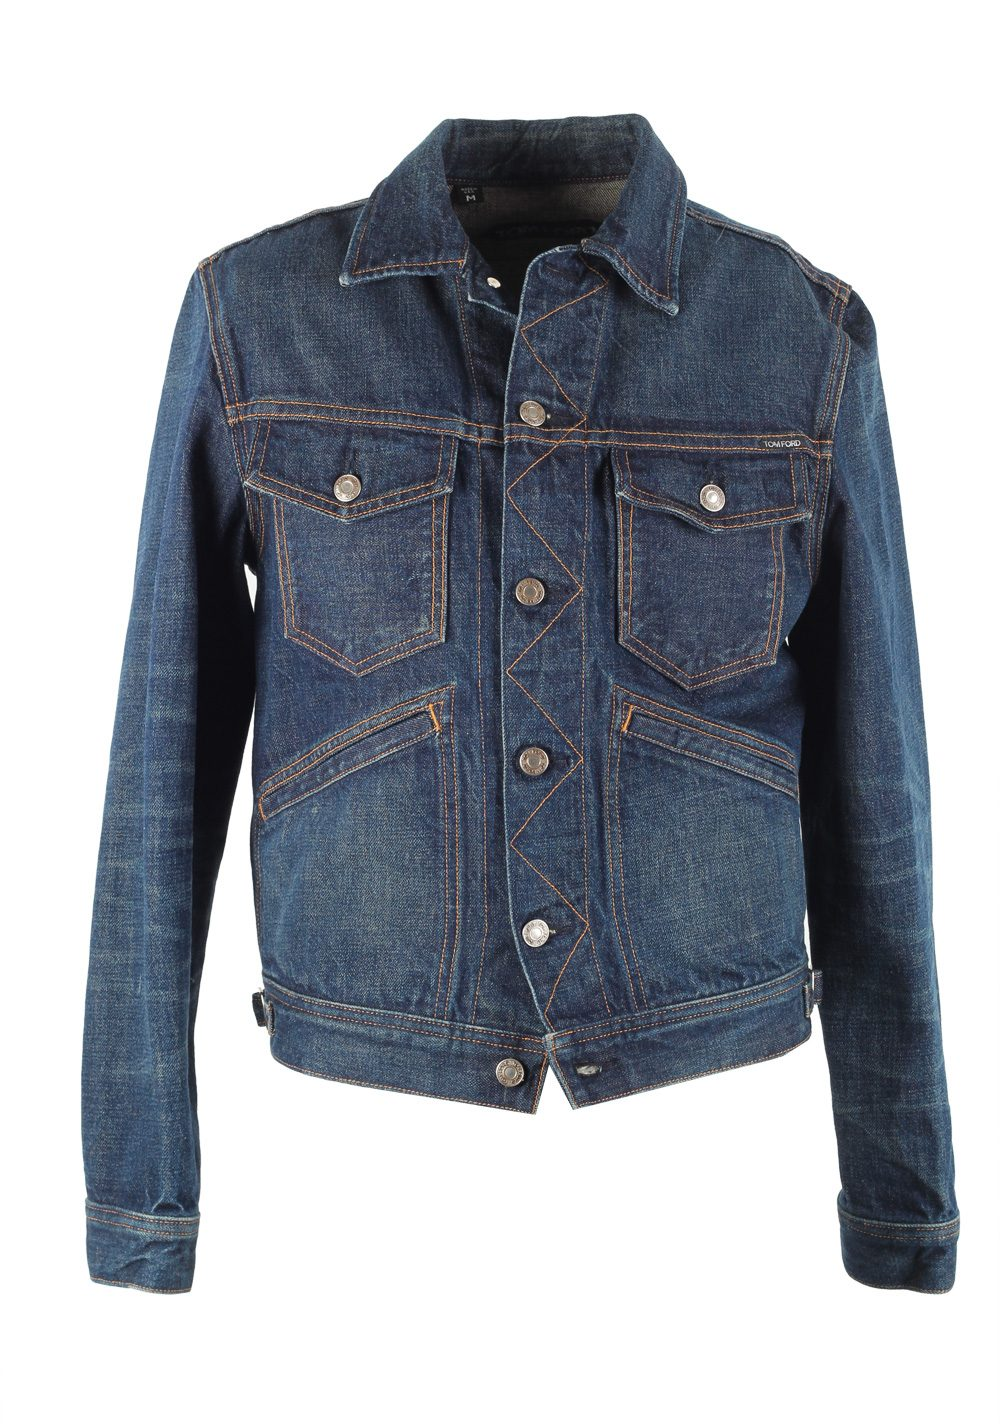 TOM FORD Icon Japanese Denim Jacket Size M / 38R U.S. Outerwear | Costume Limité